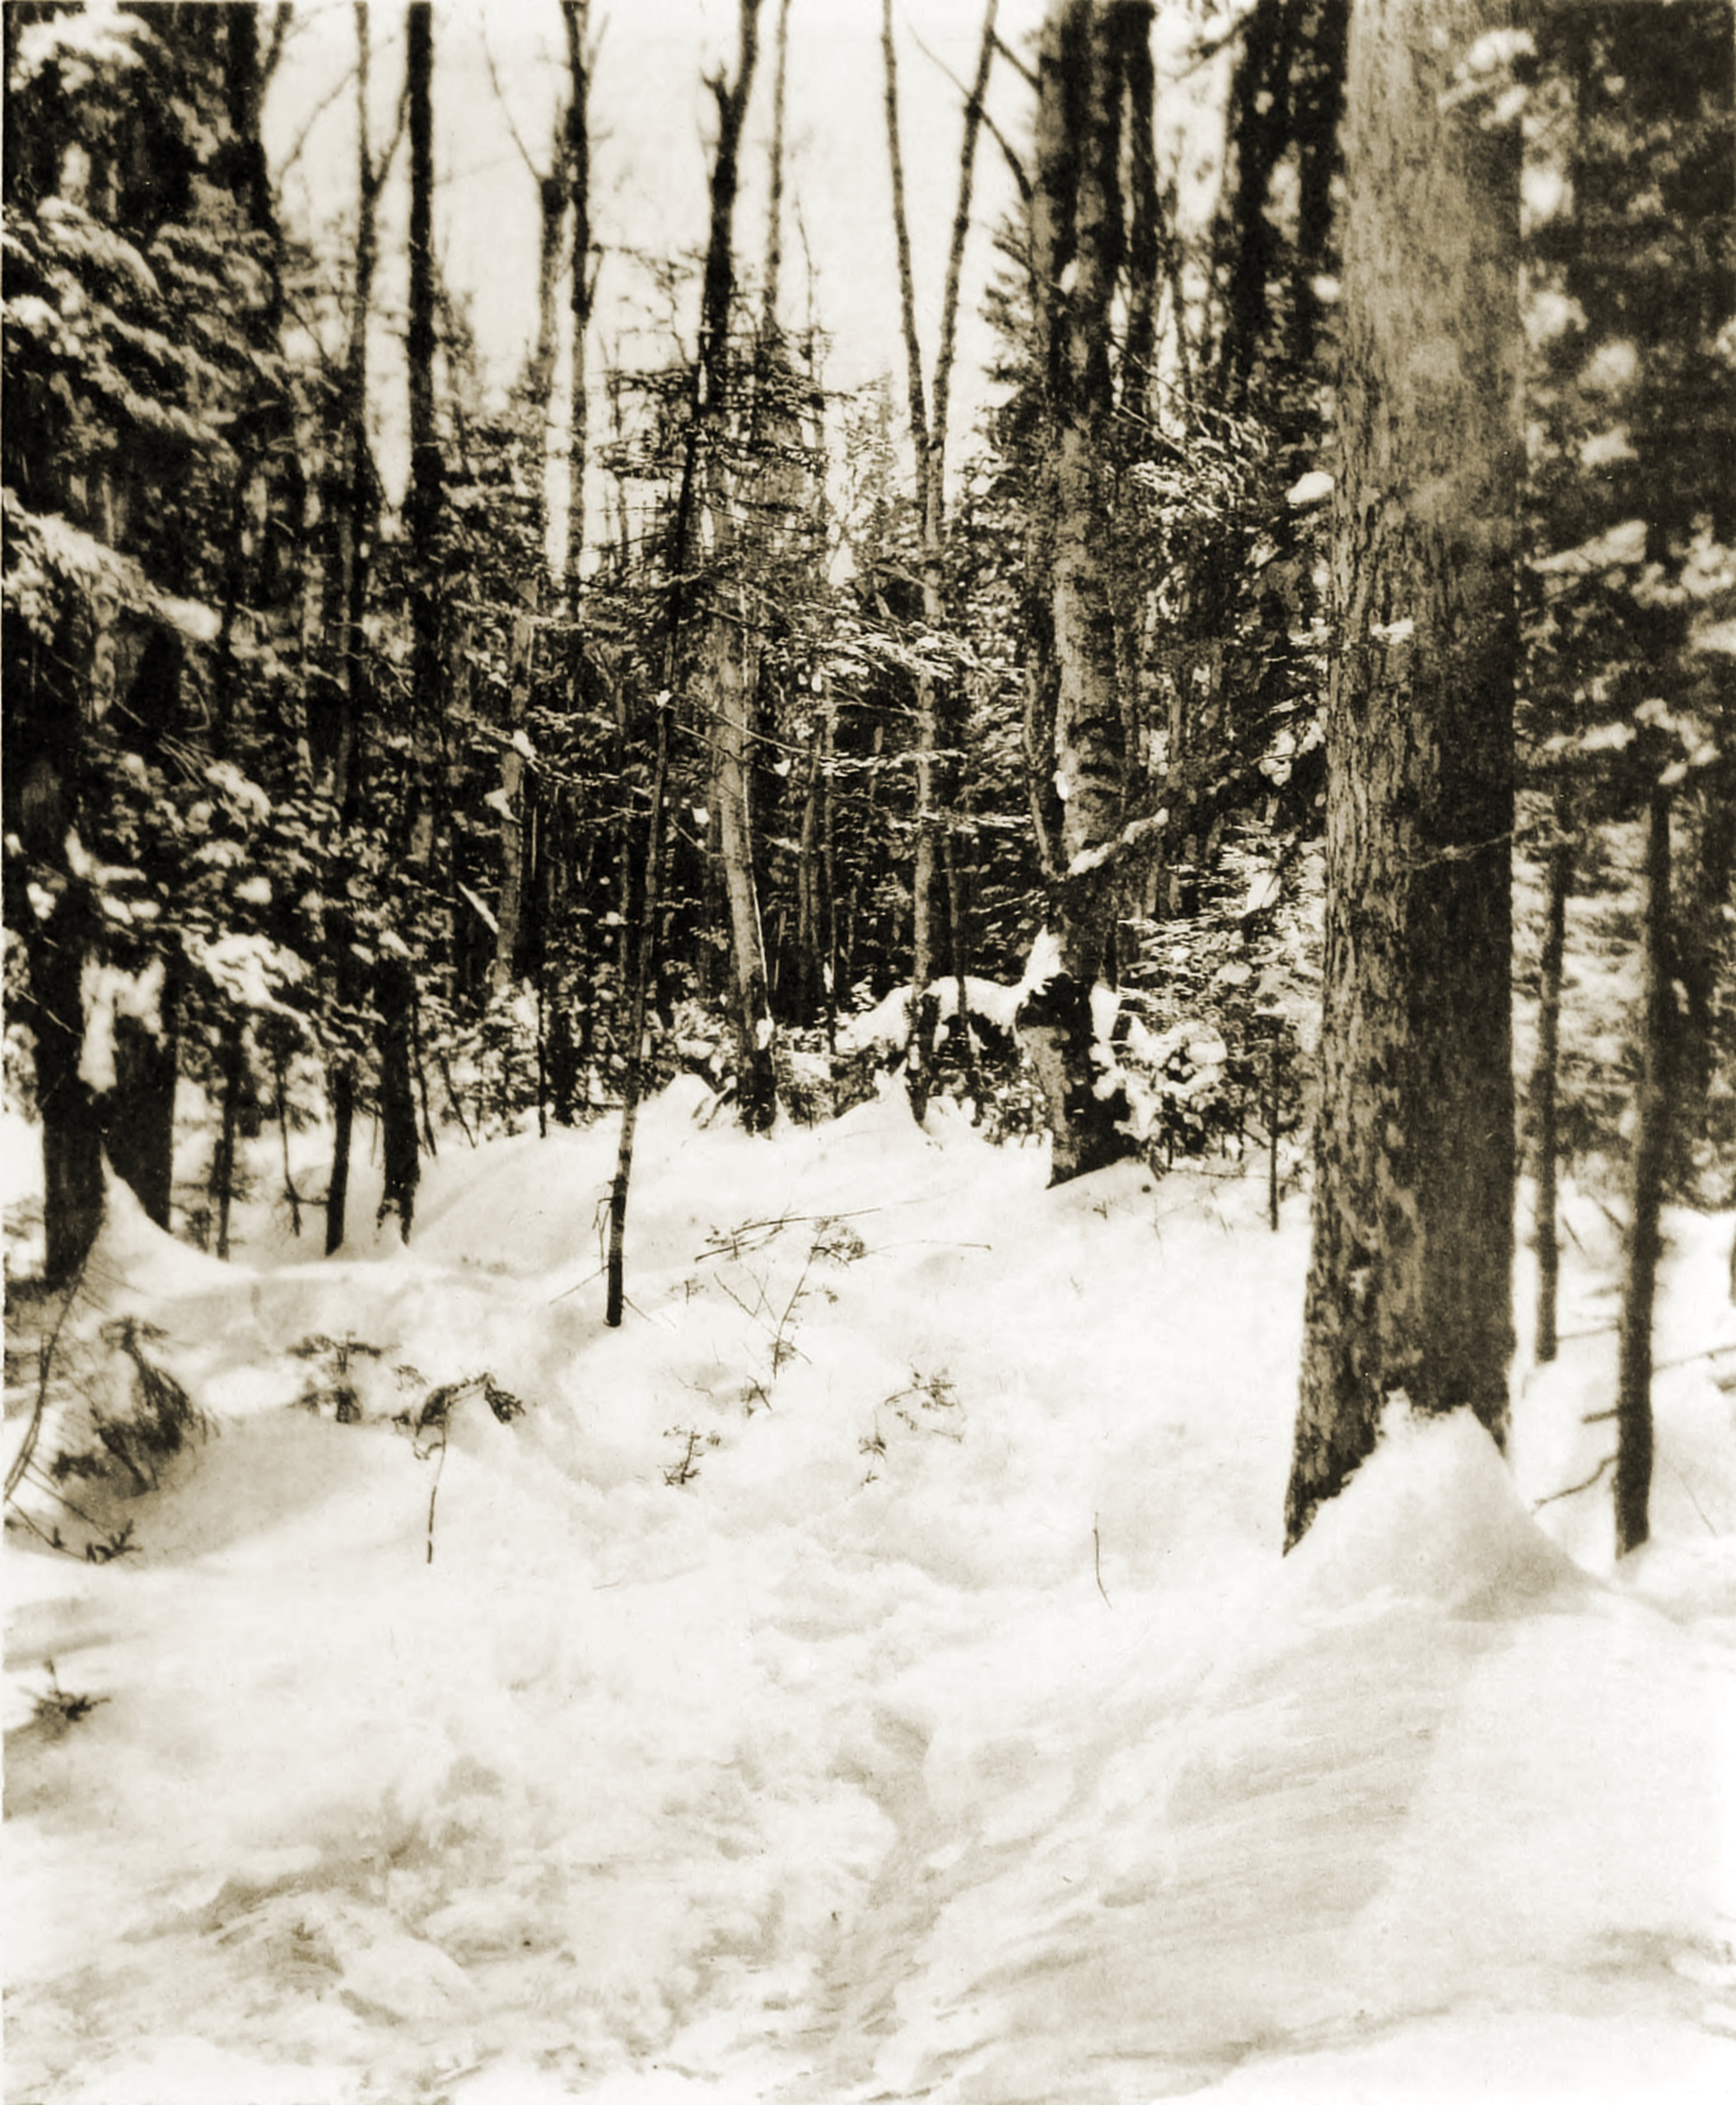 A Forest in Winter by William Sumner Briggs 1892